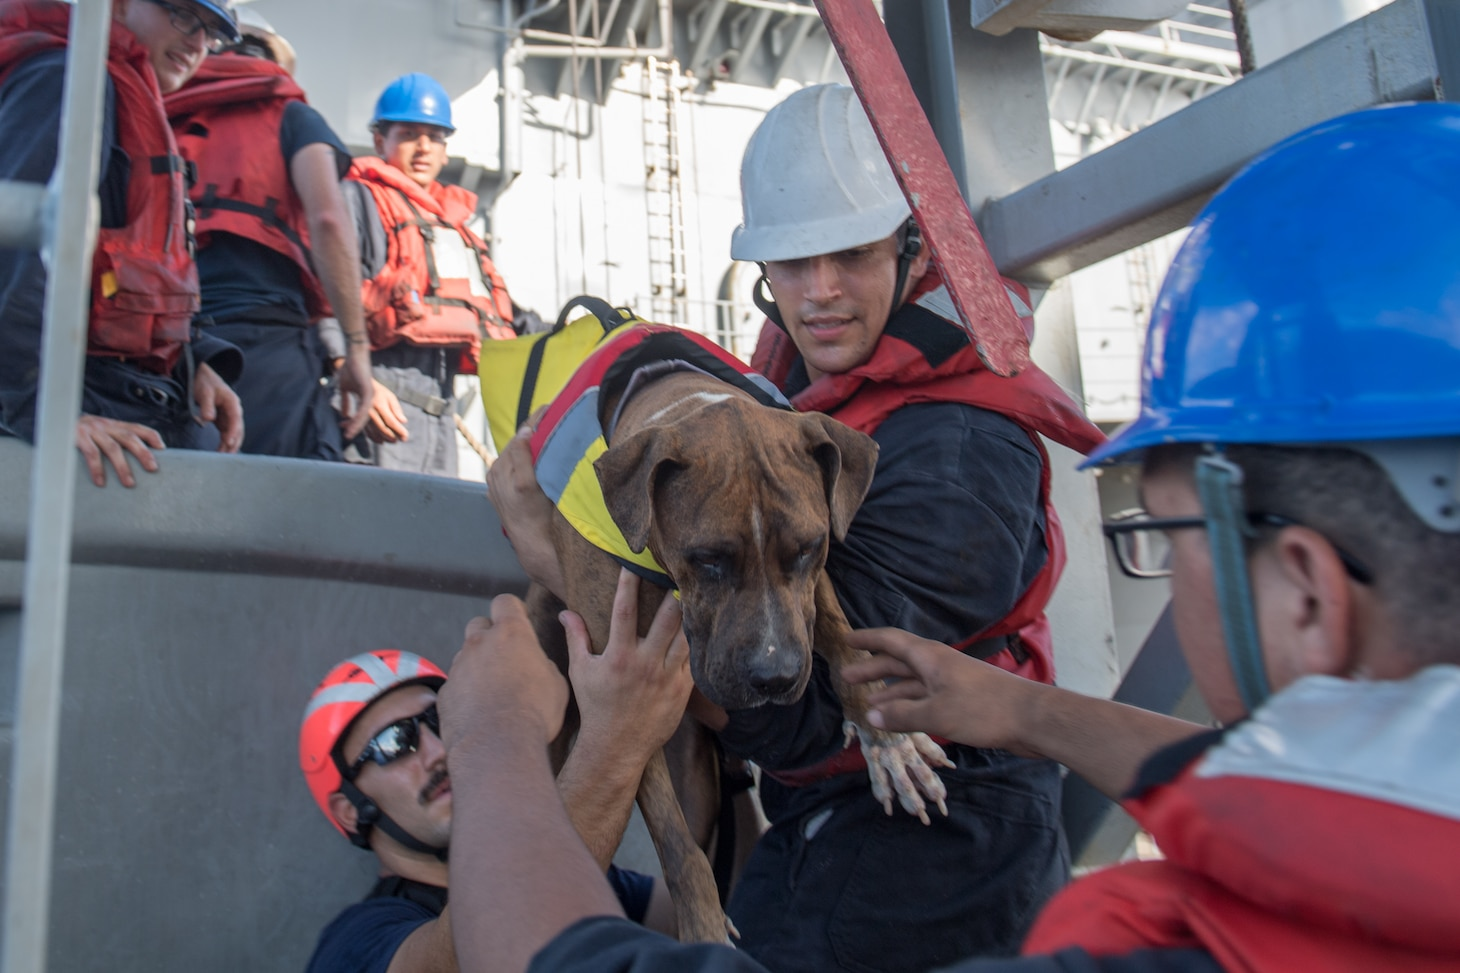 PACIFIC OCEAN (Oct. 25, 2017) Sailors help Zeus, one of twos dogs who were accompanying two mariners who were aided by the amphibious dock landing ship USS Ashland (LSD 48). Ashland, operating in the Indo-Asia-Pacific region on a routine deployment, rescued two American mariners who had been in distress for several months after their sailboat had a motor failure and had strayed well off its original course while traversing the Pacific Ocean.